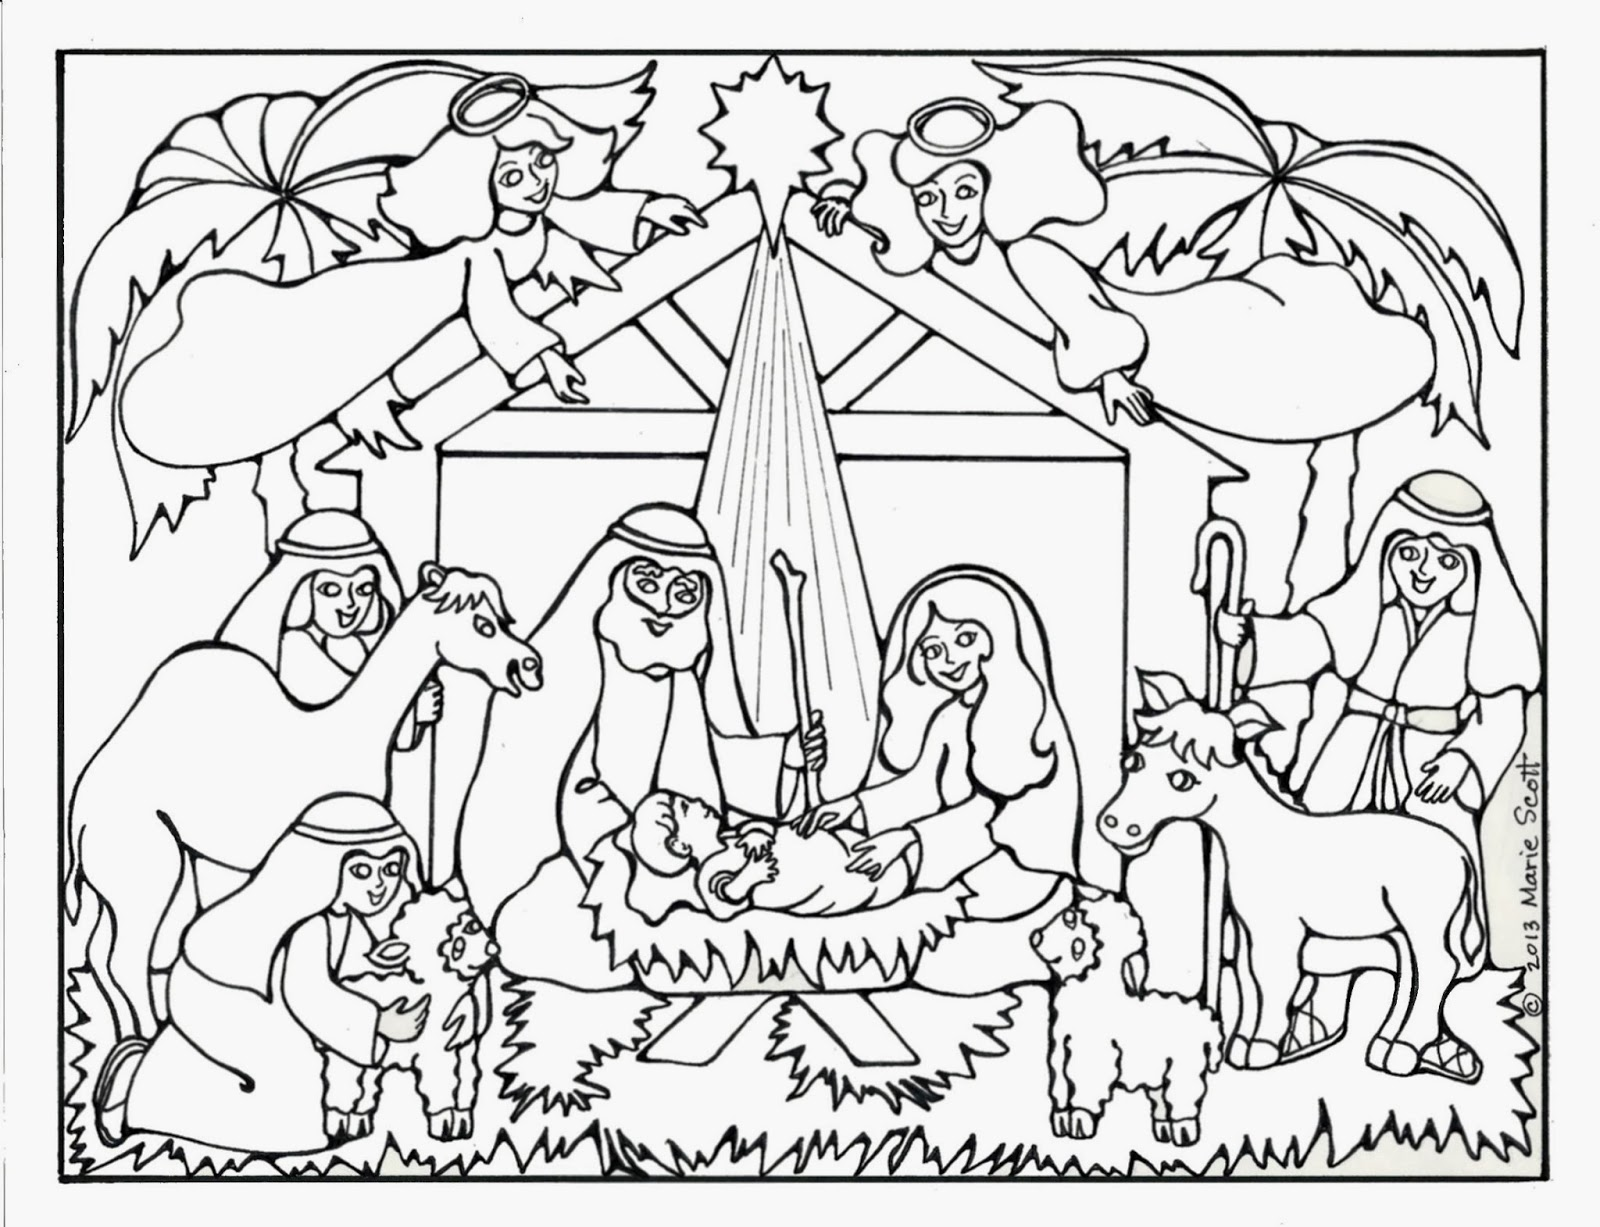 Kneeling Santa Coloring Page With Elf On The Shelf Pages Printable Claus Christmas